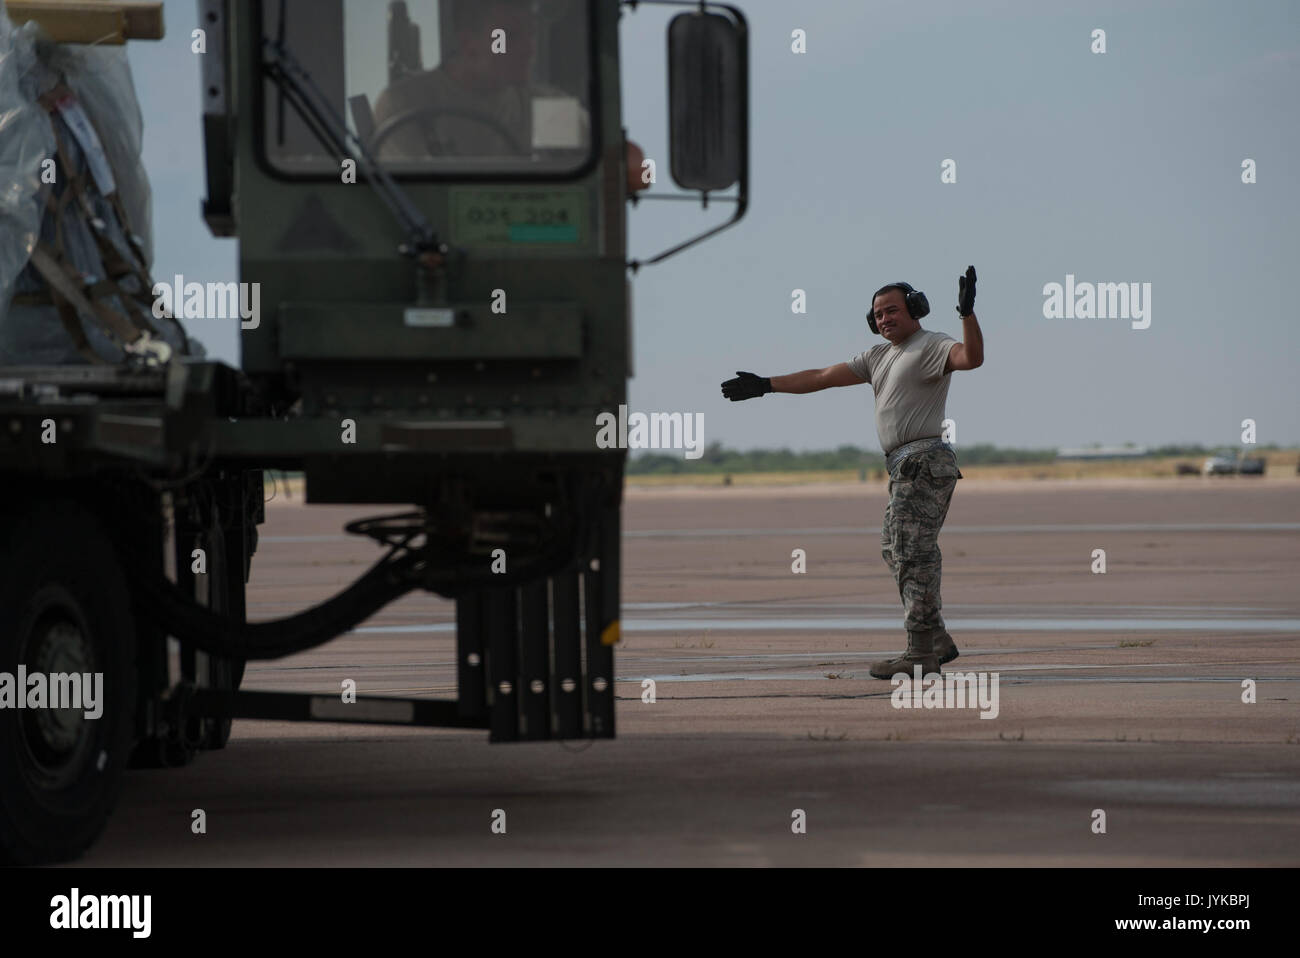 U.S. Air Force Tech Sgt. Jose Ortega, 7th Logistics Readiness Squadron air transportation section chief, guides Stock Photo